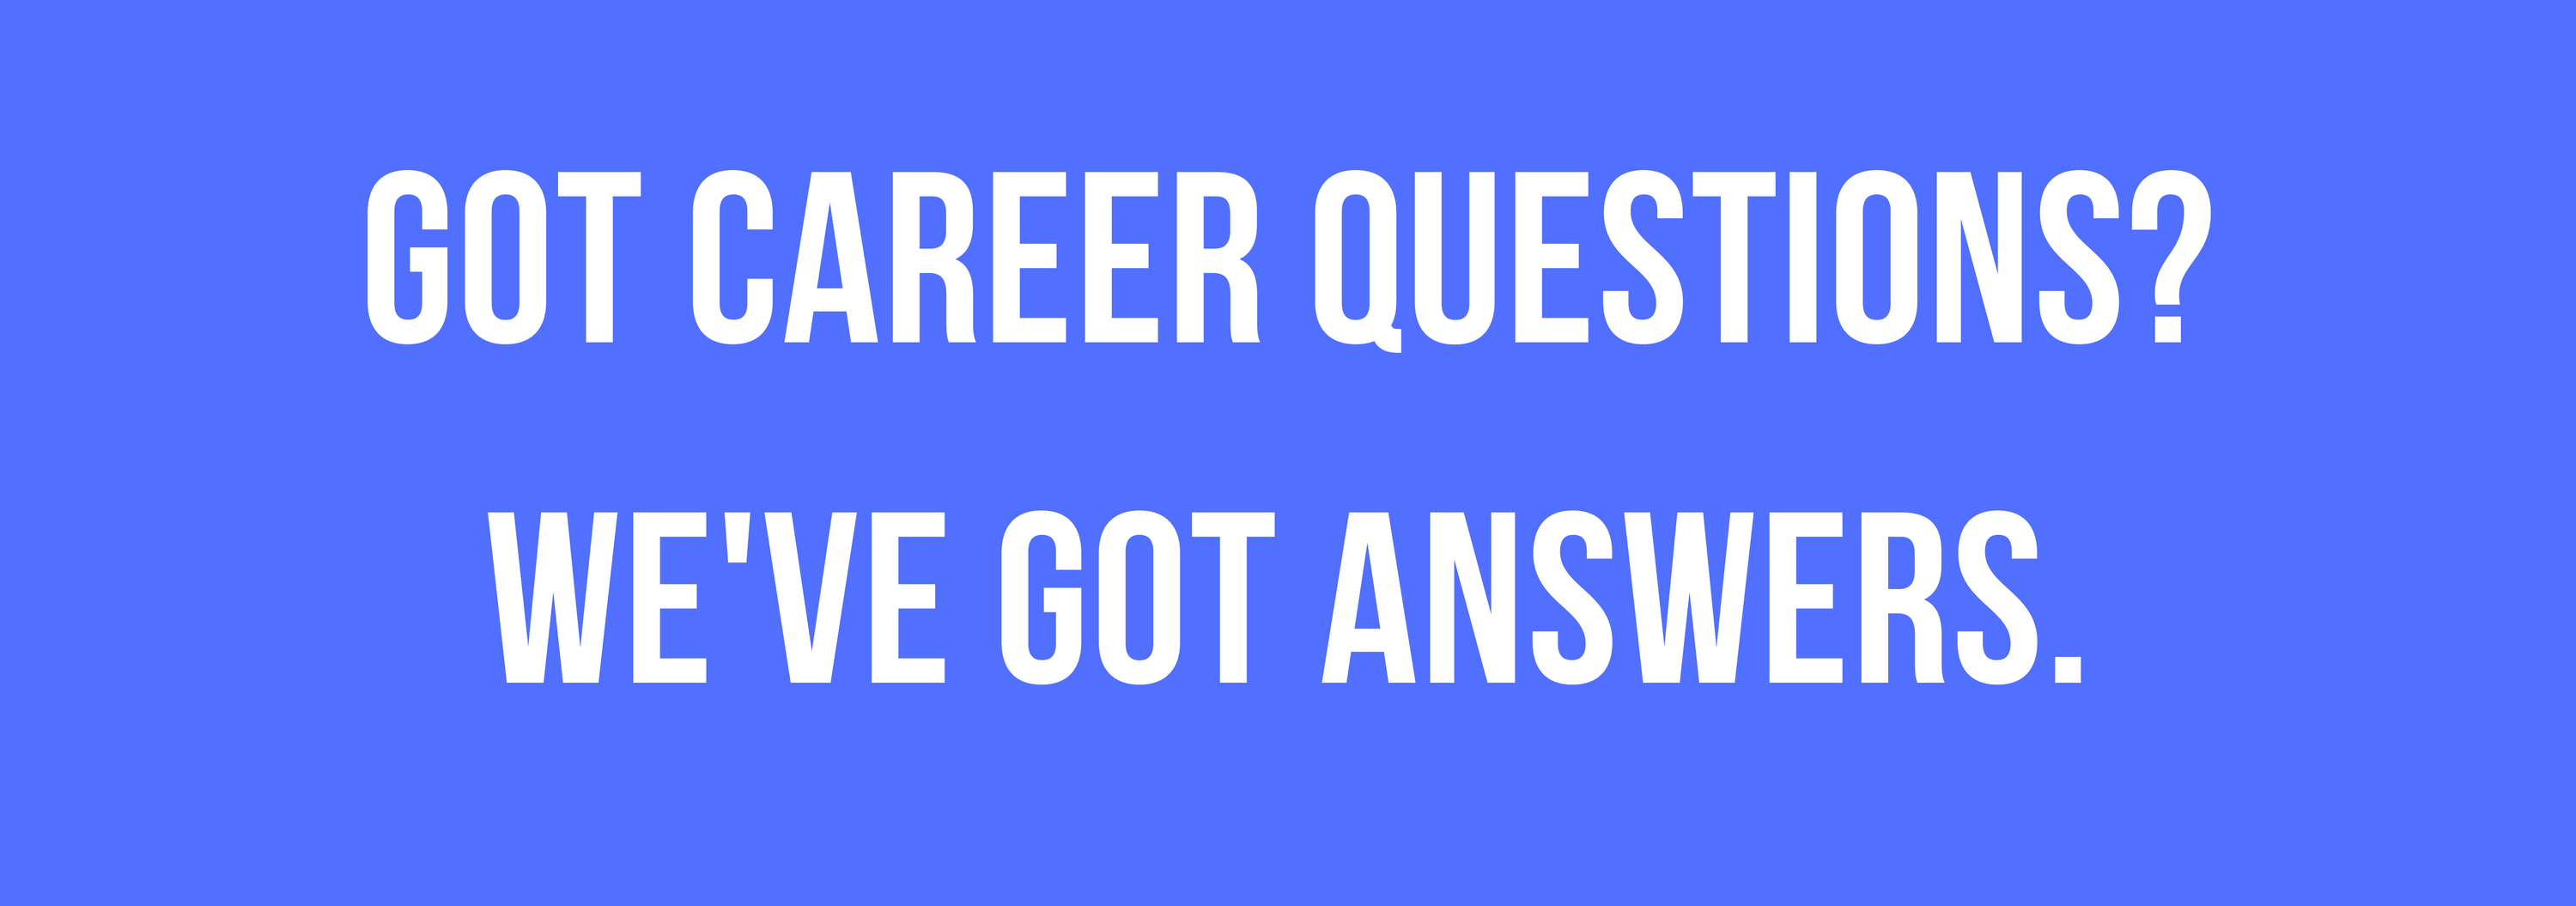 coaching work it daily have a burning question about your job search that you need answered asap